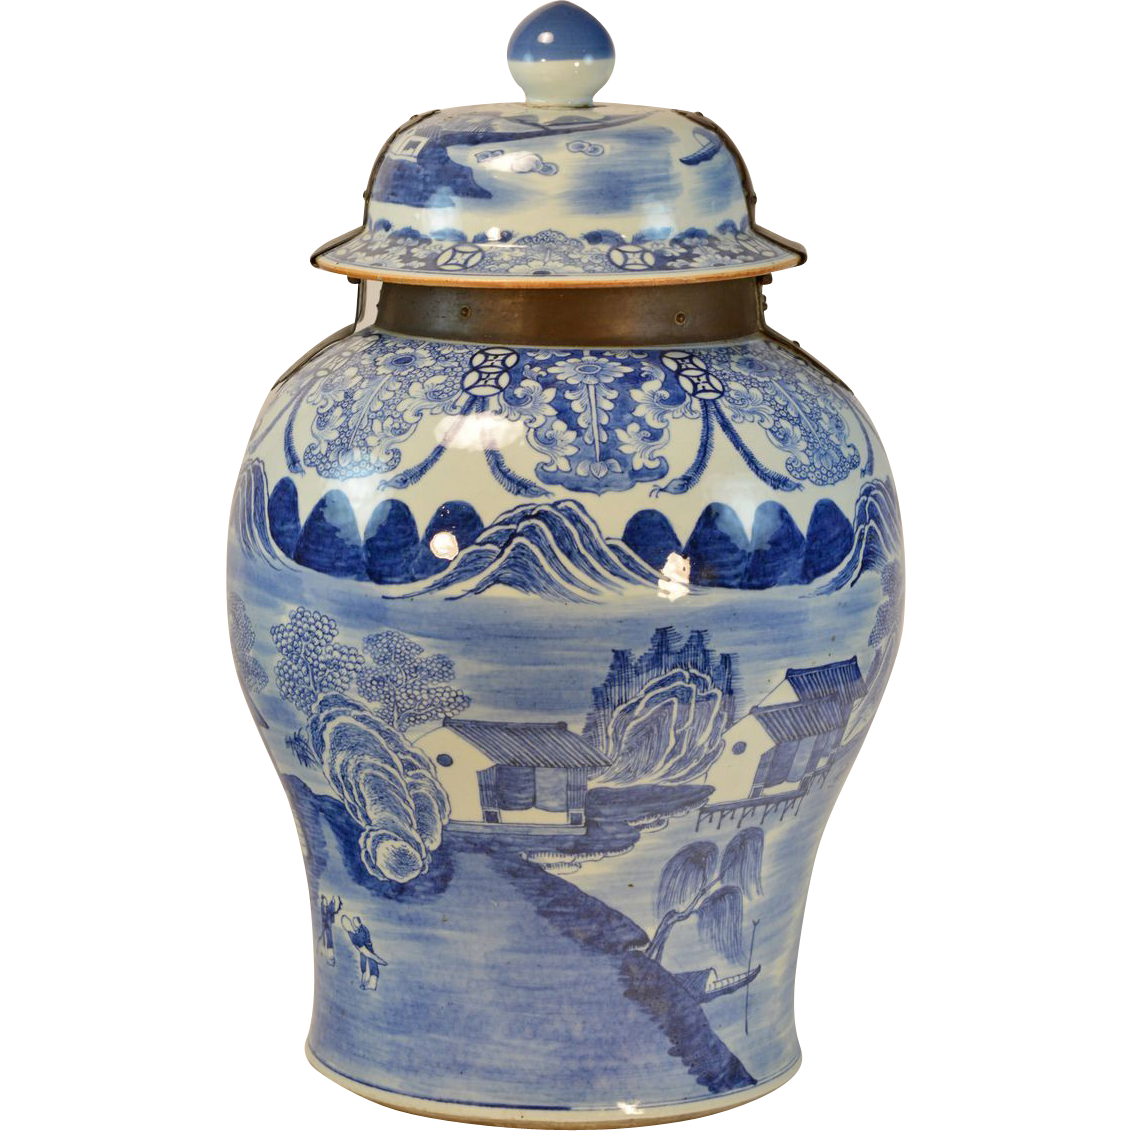 Giant 18th century chinese blue white porcelain palace floor giant 18th century chinese blue white porcelain palace floor vase or classic tradition ruby lane floridaeventfo Images